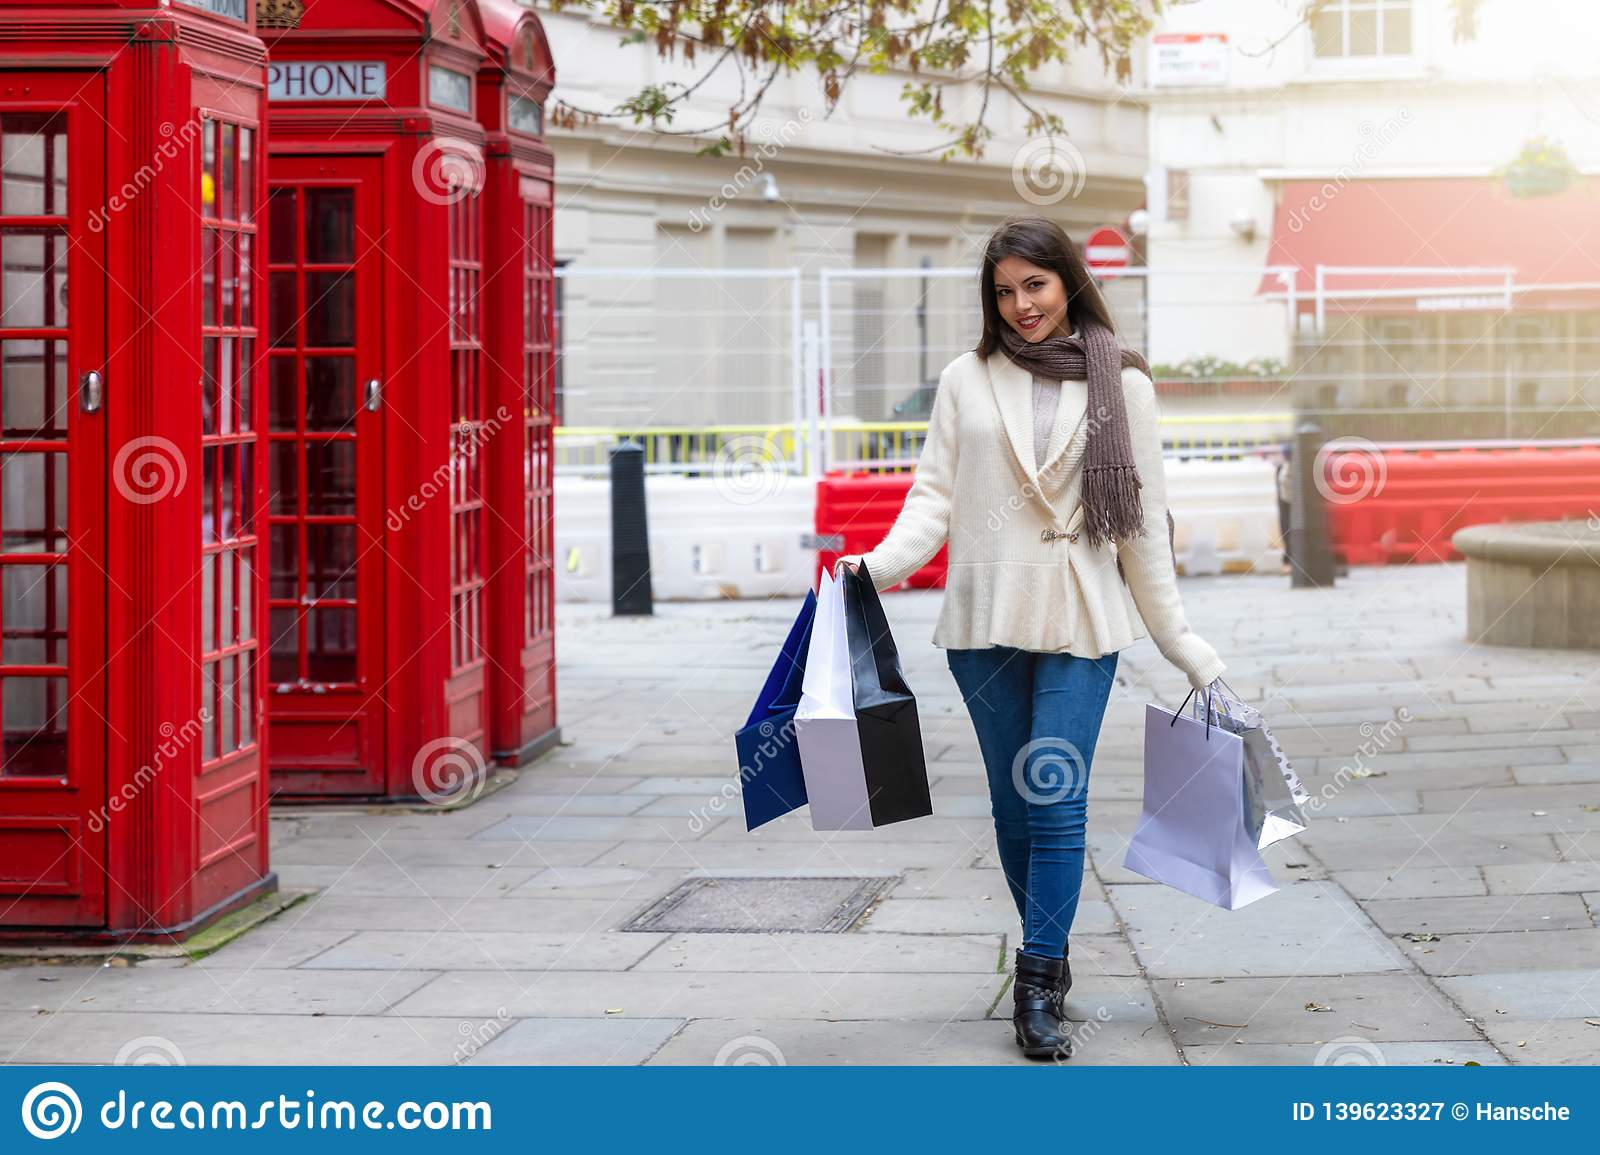 City shopping woman walks along red telephone booths in London, UK